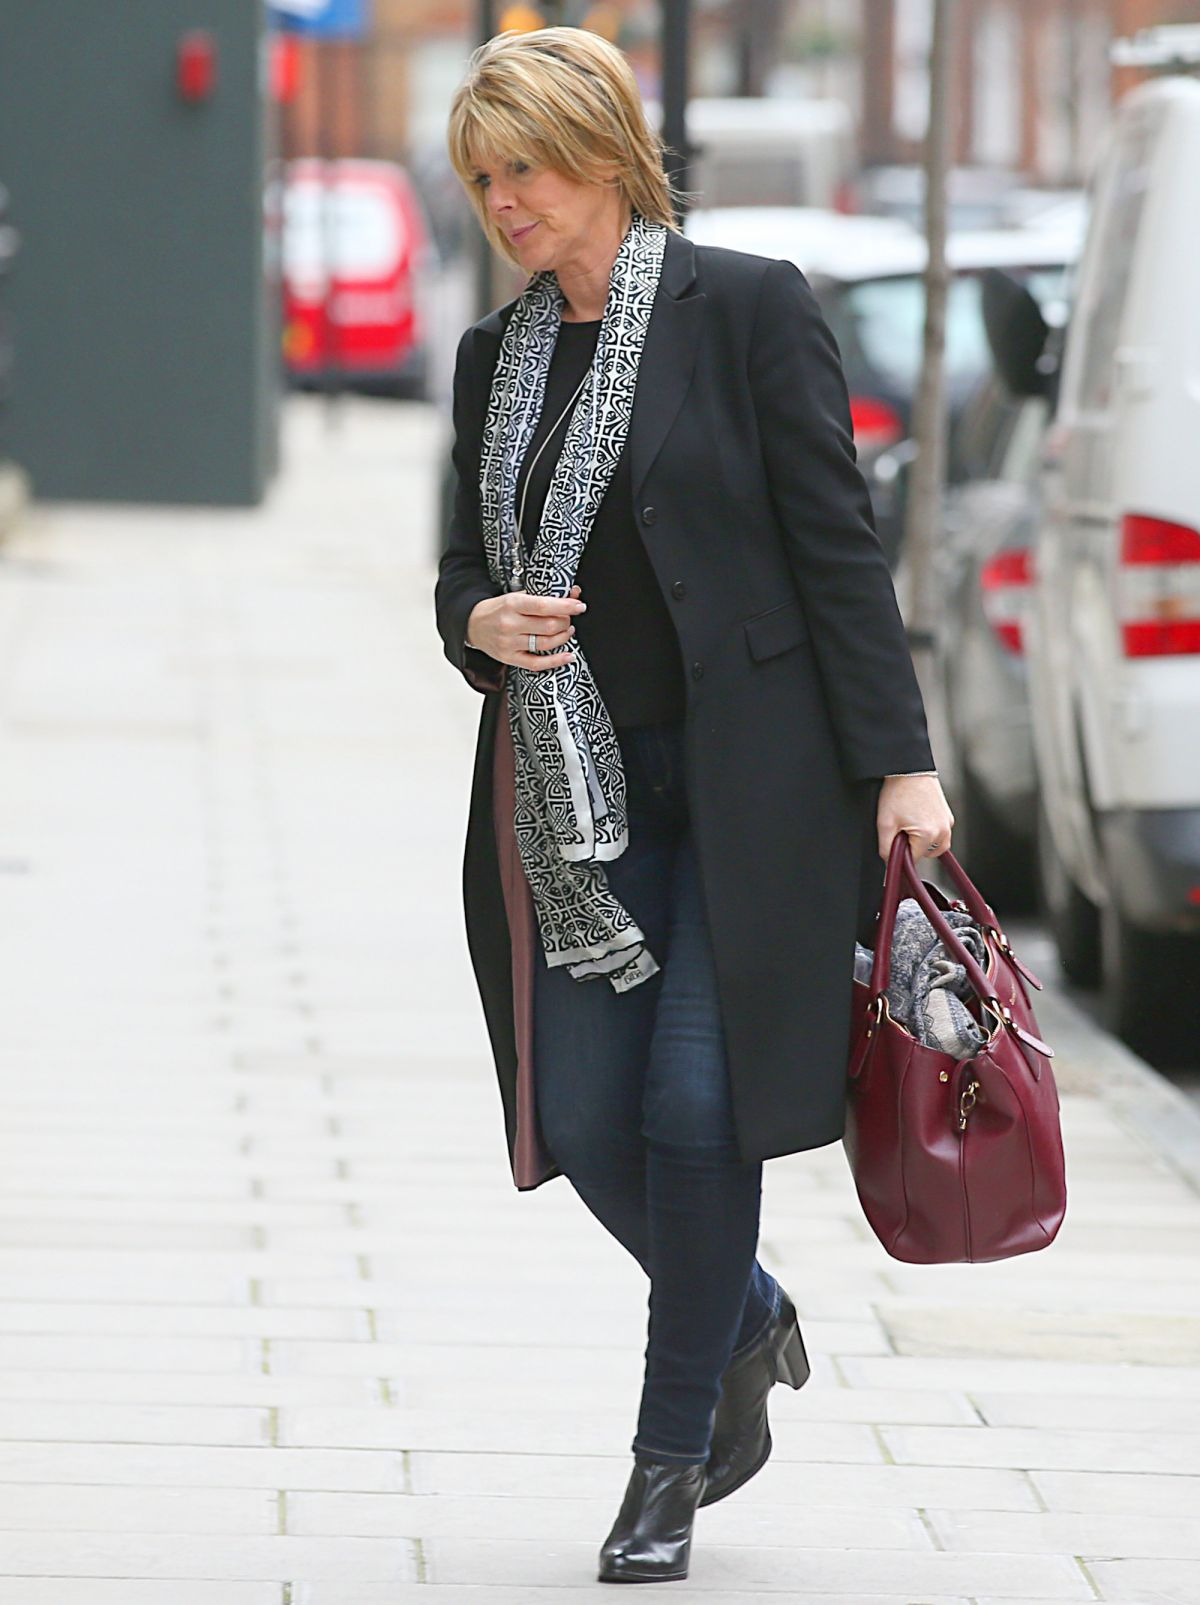 RUTH LANGSFORD Arrives at a Hospital in London 02/05/2016